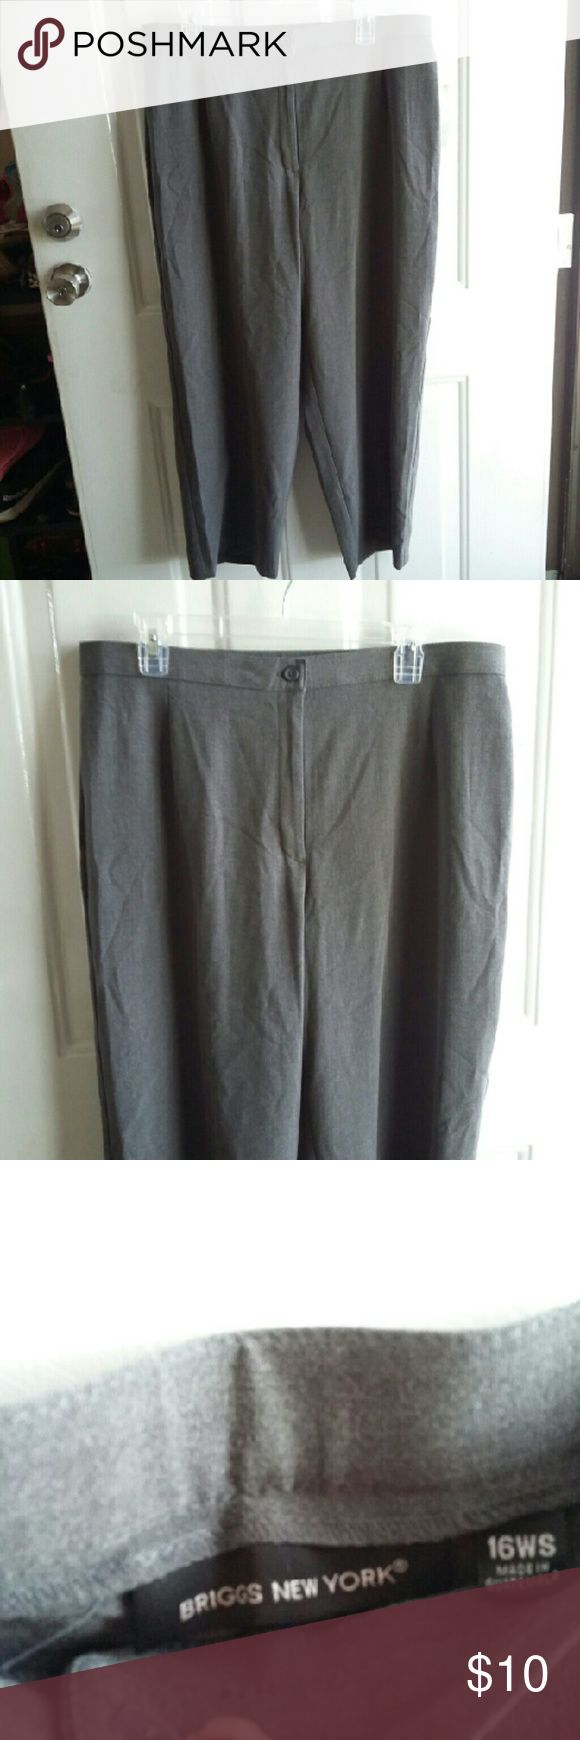 NWT BRIGGS LADIES PANTS SZ 16WS This is a sz 16 wide short. New with tags BRIGGS Pants Trousers